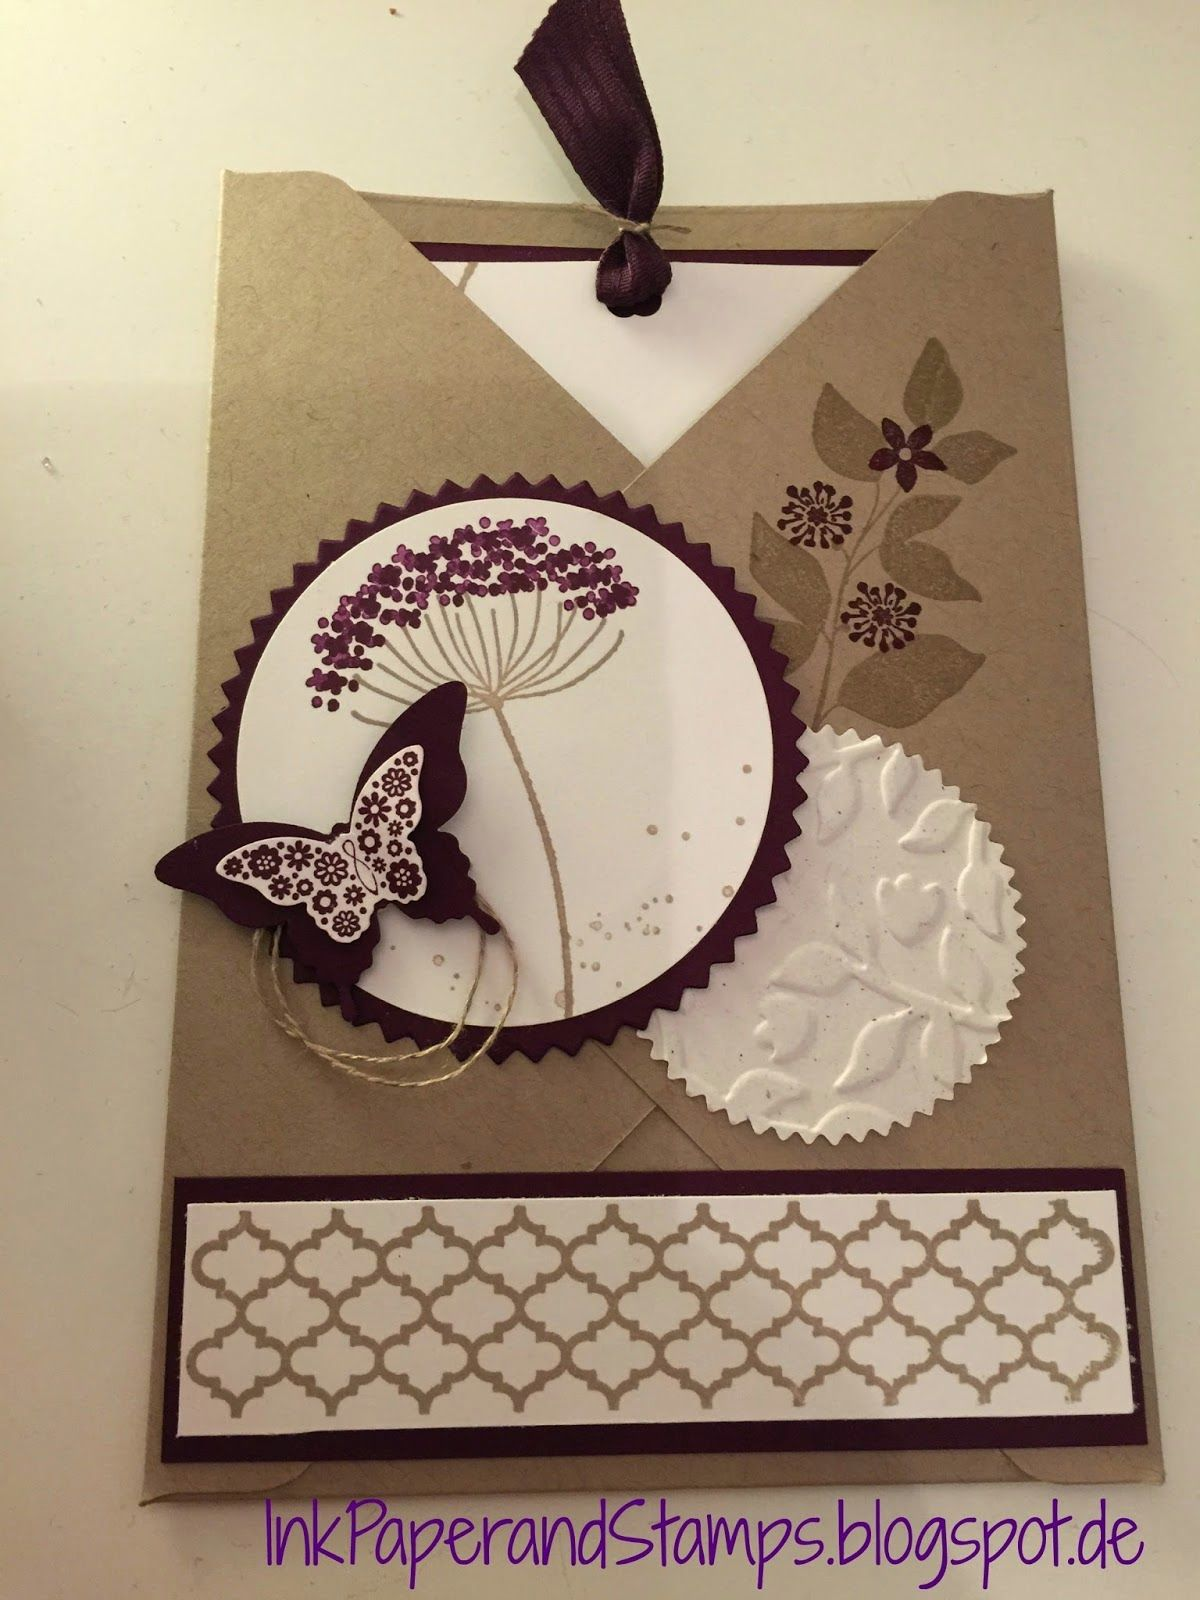 Ink, Paper and Stamps: Workshop